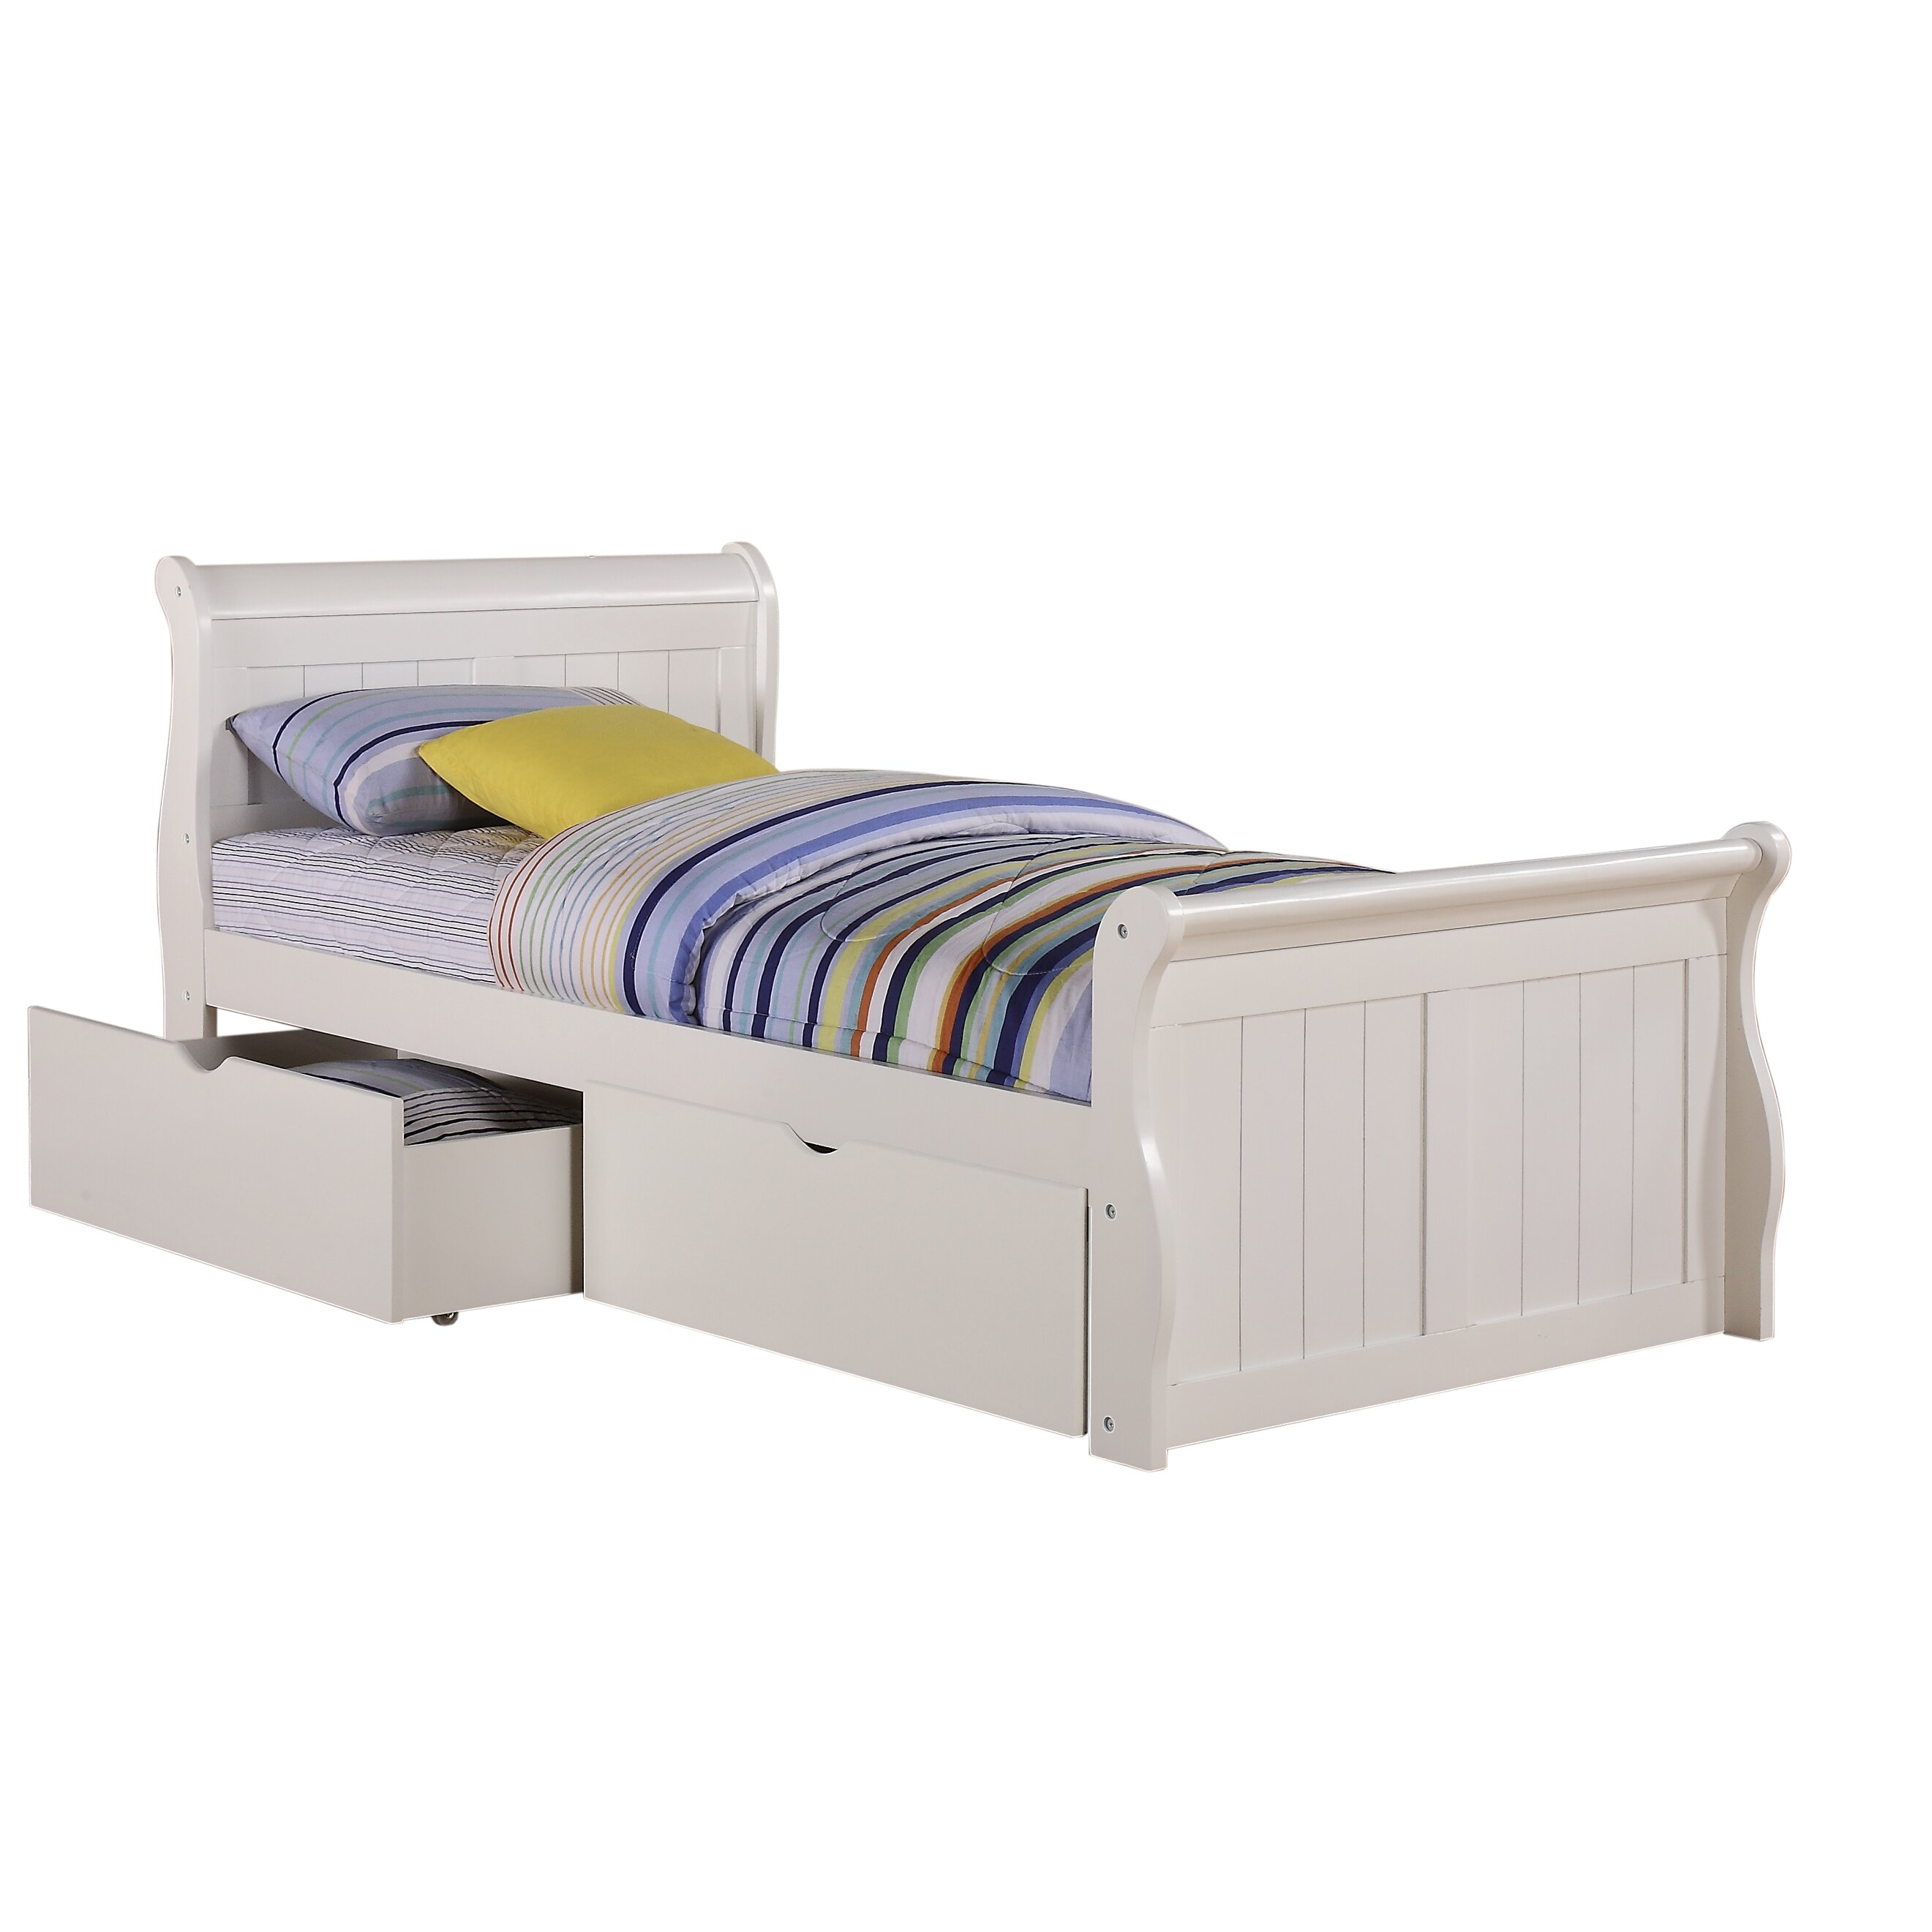 Bed frames with storage for kids - Donco Kids Sleigh Bed With Storage